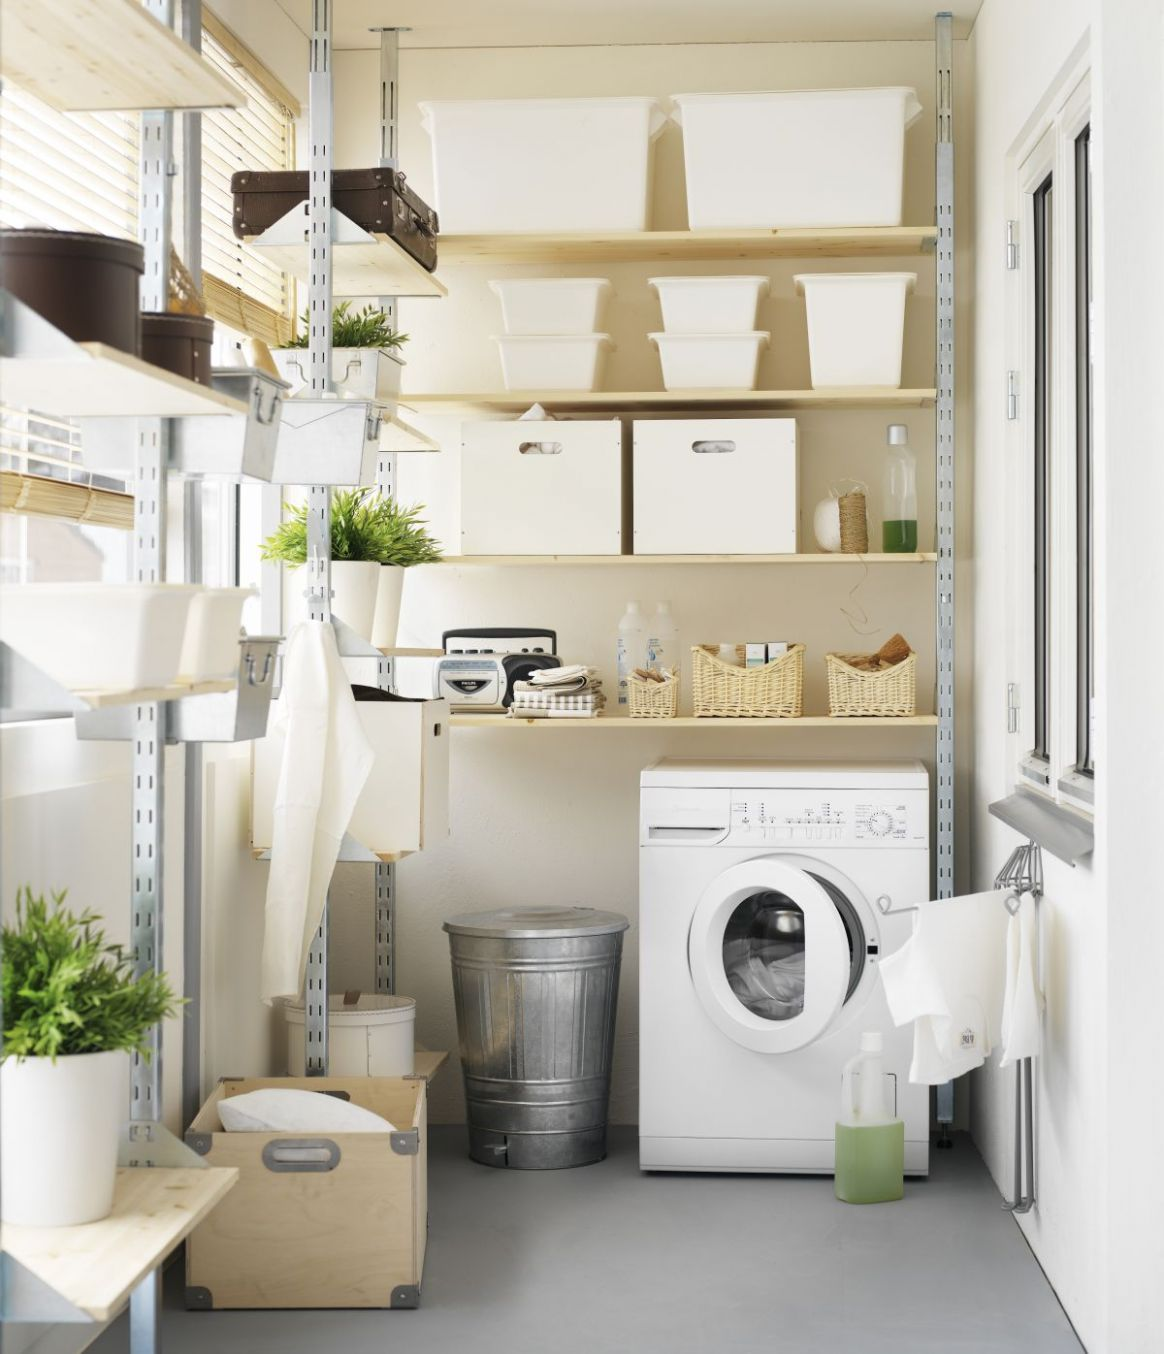 Laundry room ideas: 12 smart storage ideas to get your space ...